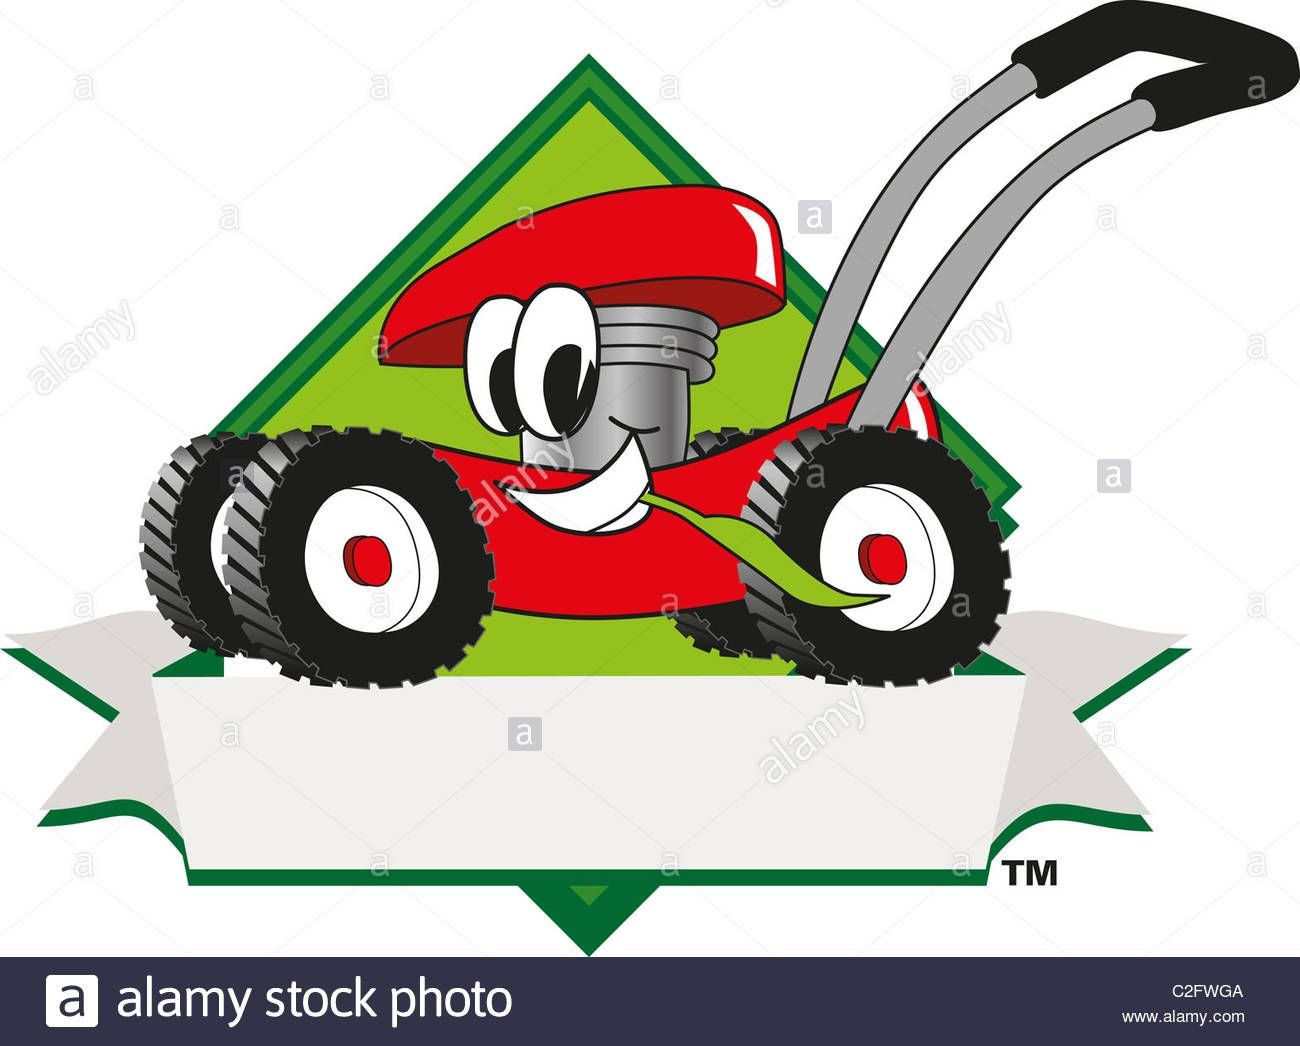 Lawn Mowing Clipart Images In 2021 Lawn Mower Clip Art Best Lawn Mower